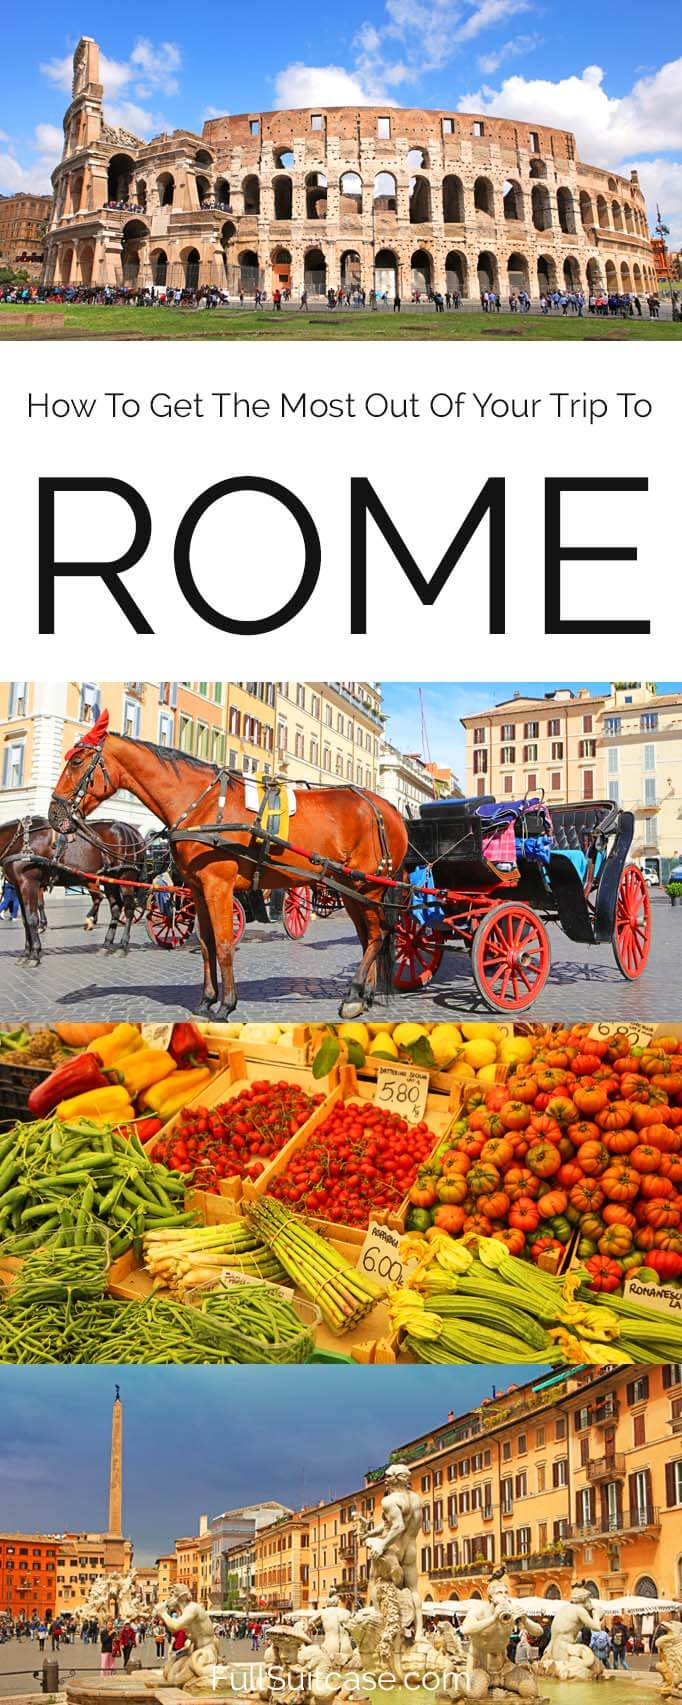 How to get the most out of your trip to Rome - 7 tips for a better experience. #Rome #Italy #travel #tips